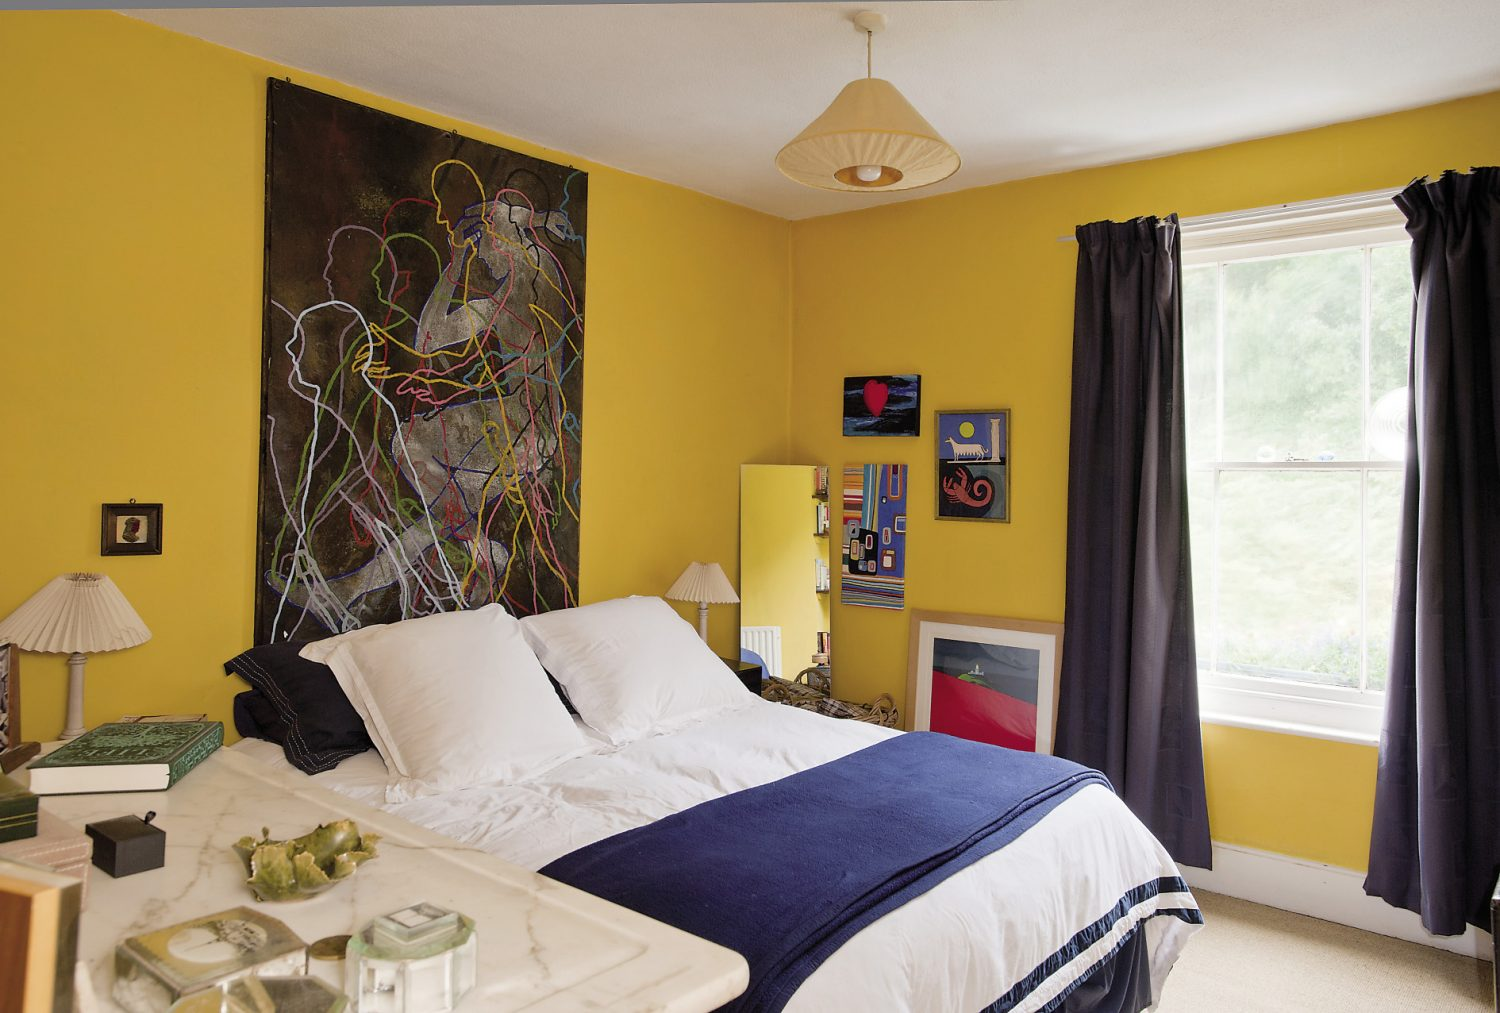 The master bedroom. Above the bed is a painting by the Grey Organisation, an artists' collective that was active in London in the 80s